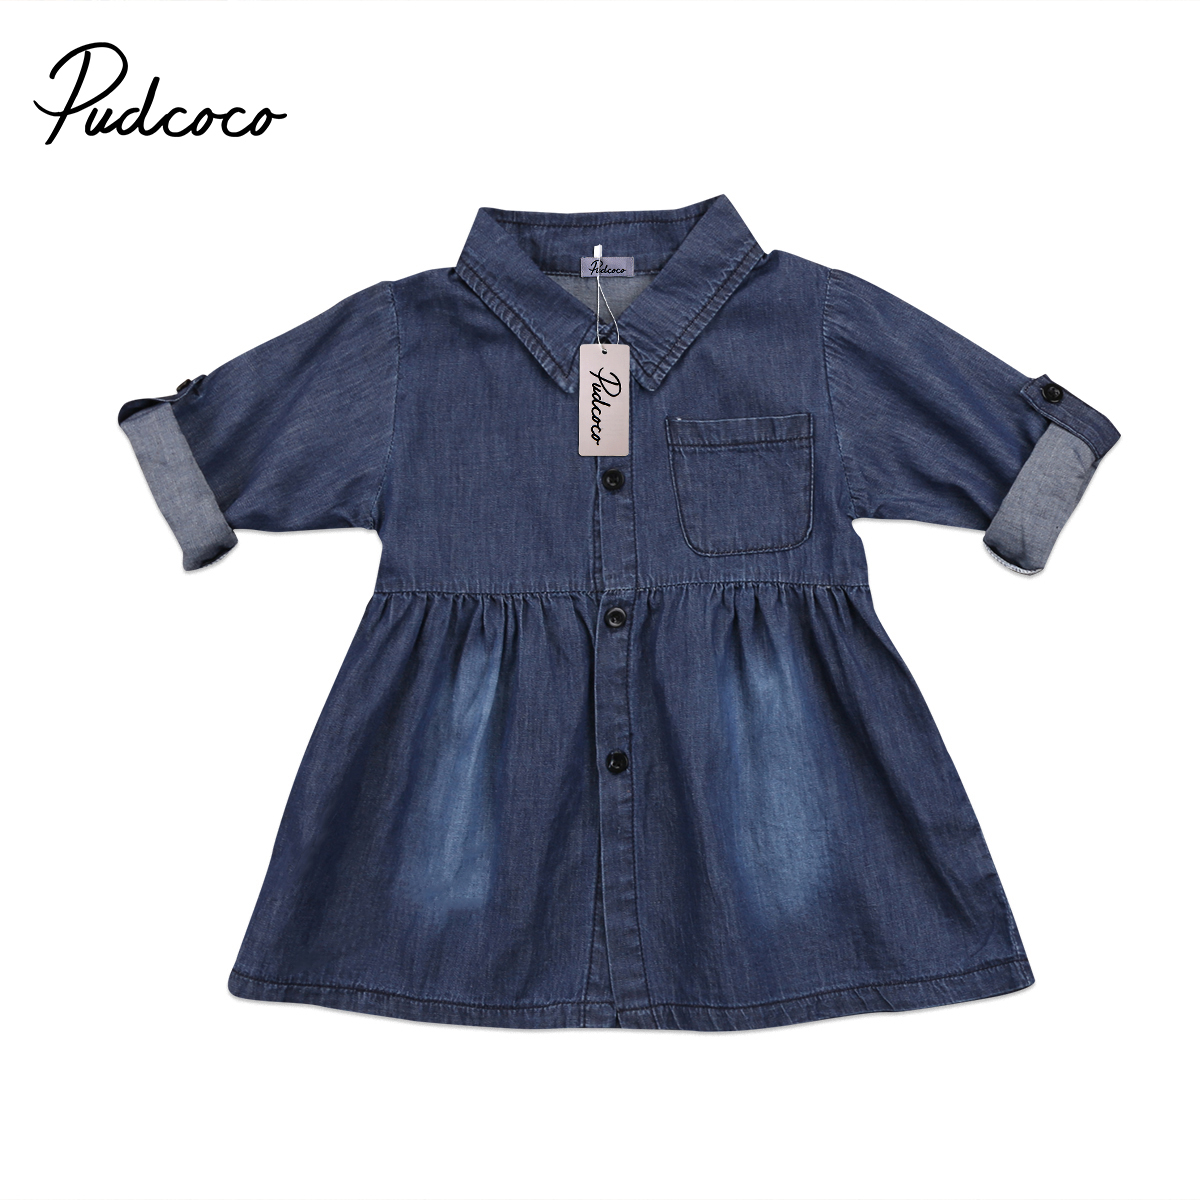 Helen115 Lovely Kids baby girl clothes Denim Jeans Casual Long Sleeve Dresses Outfits 1-5Years 2 8y girl kids lovely denim blue